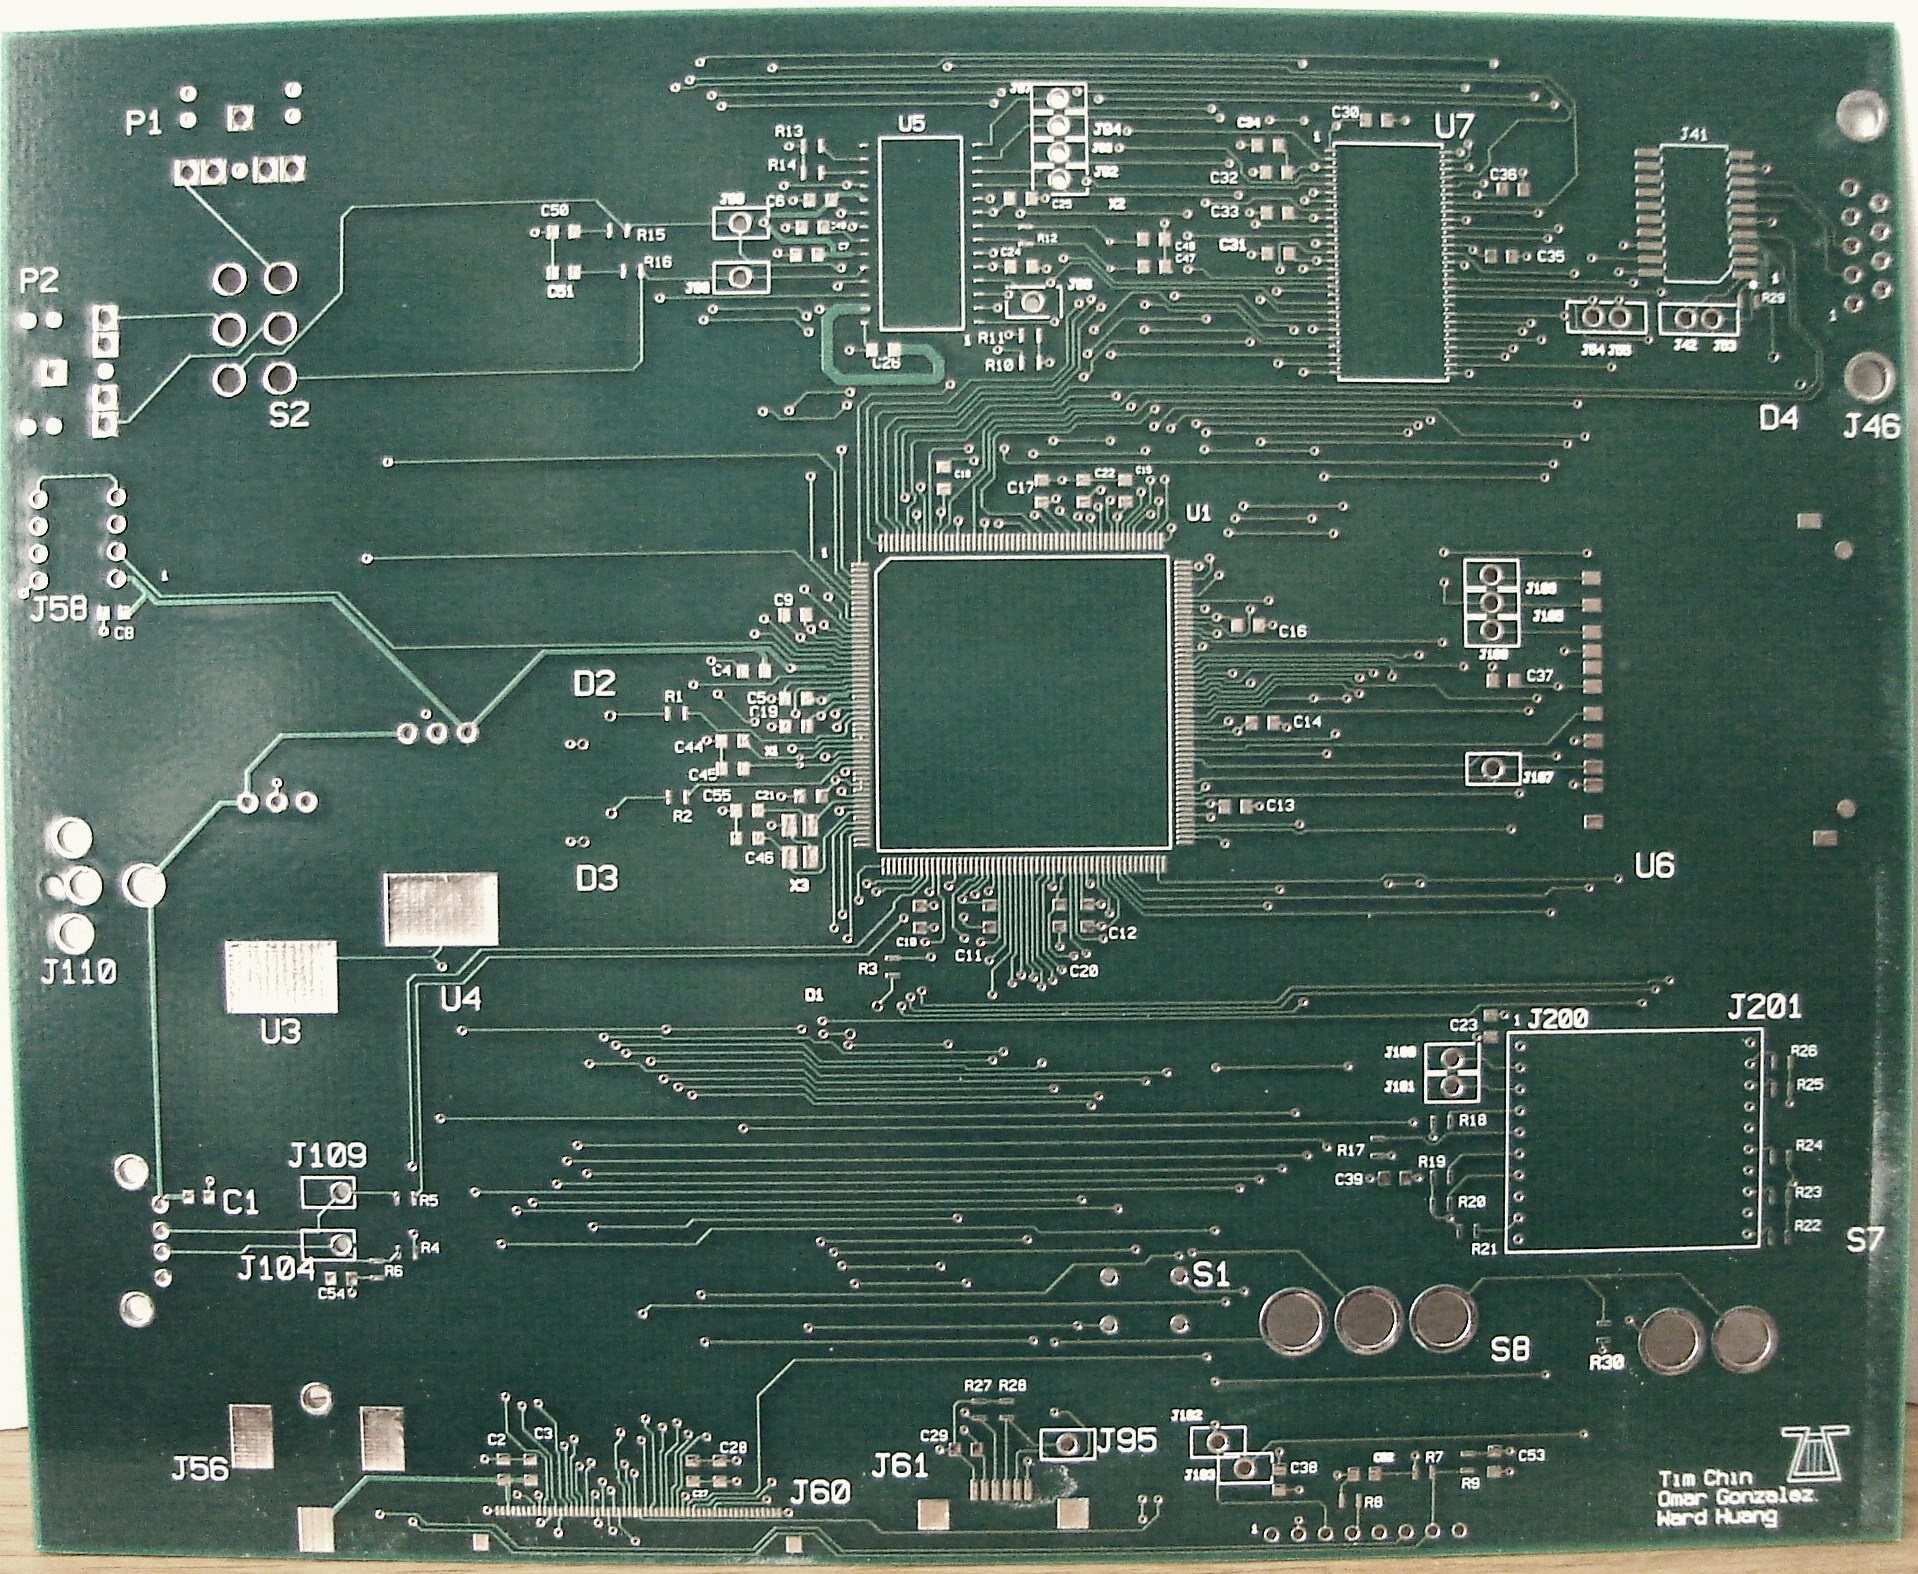 How to get a circuit board designed and created - Quora